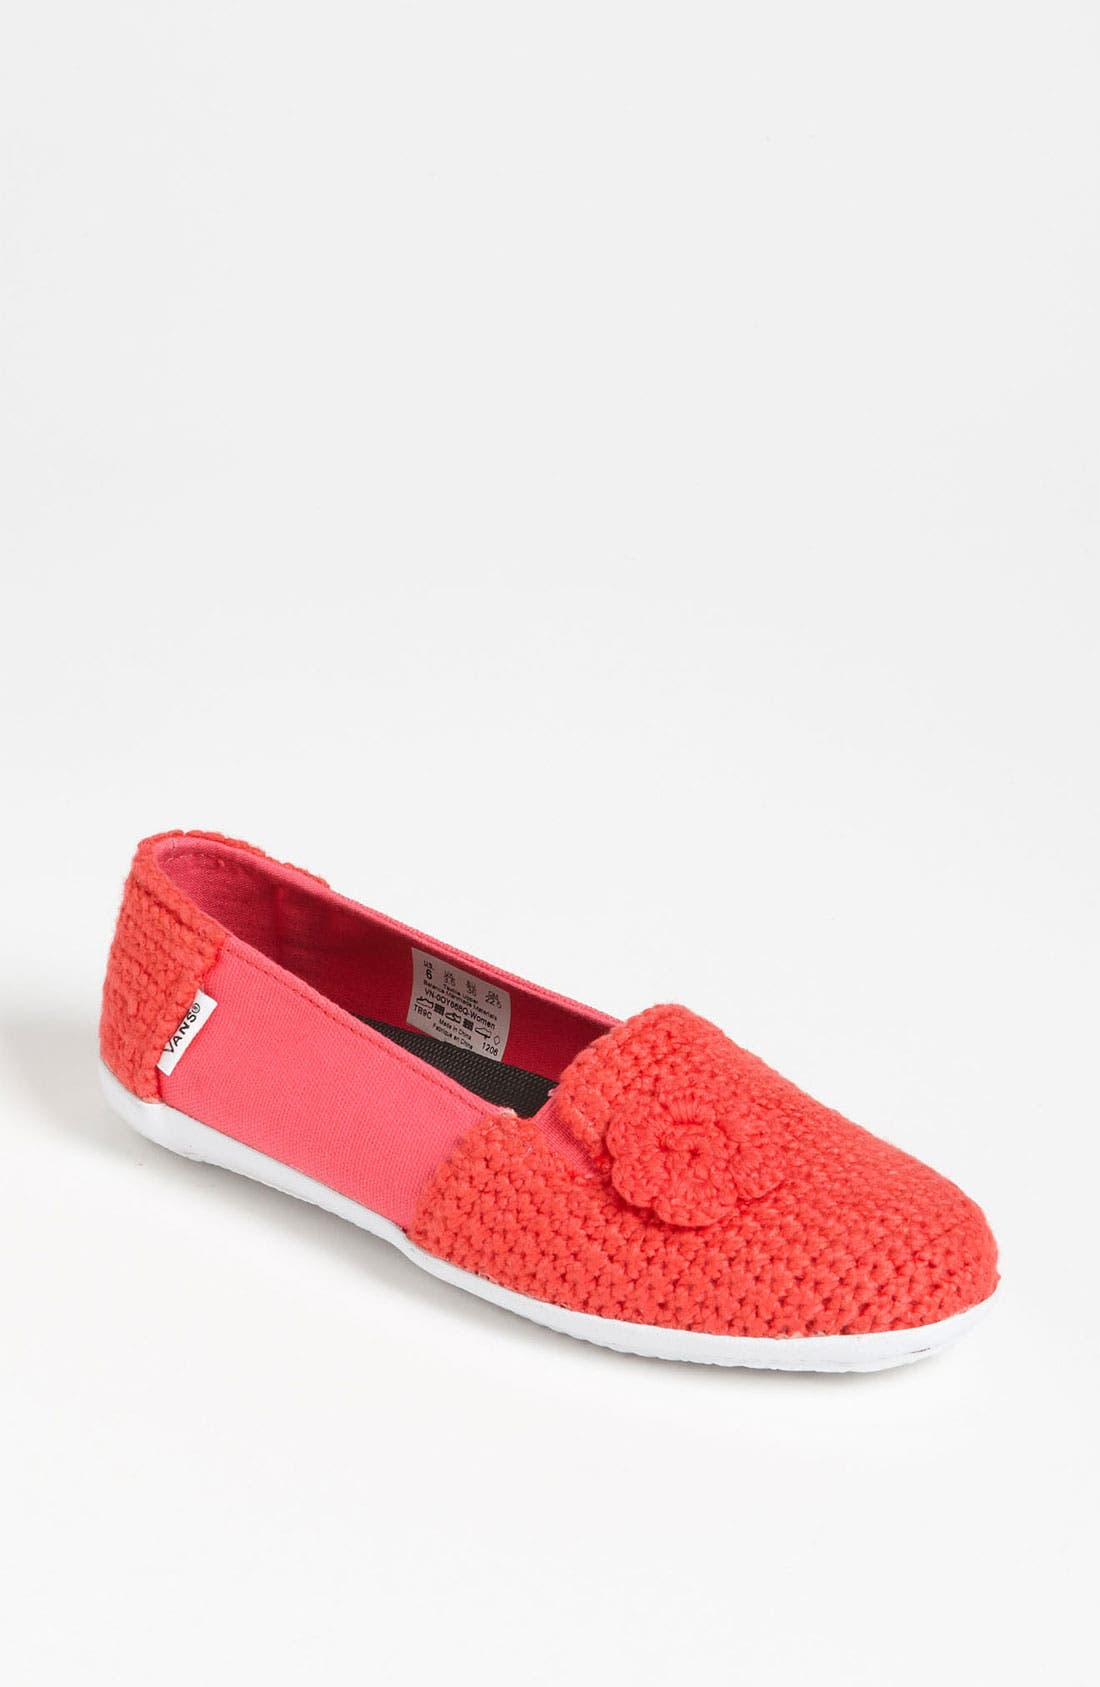 Main Image - Vans + Krochet Kids 'Bixie' Crochet Slip-On